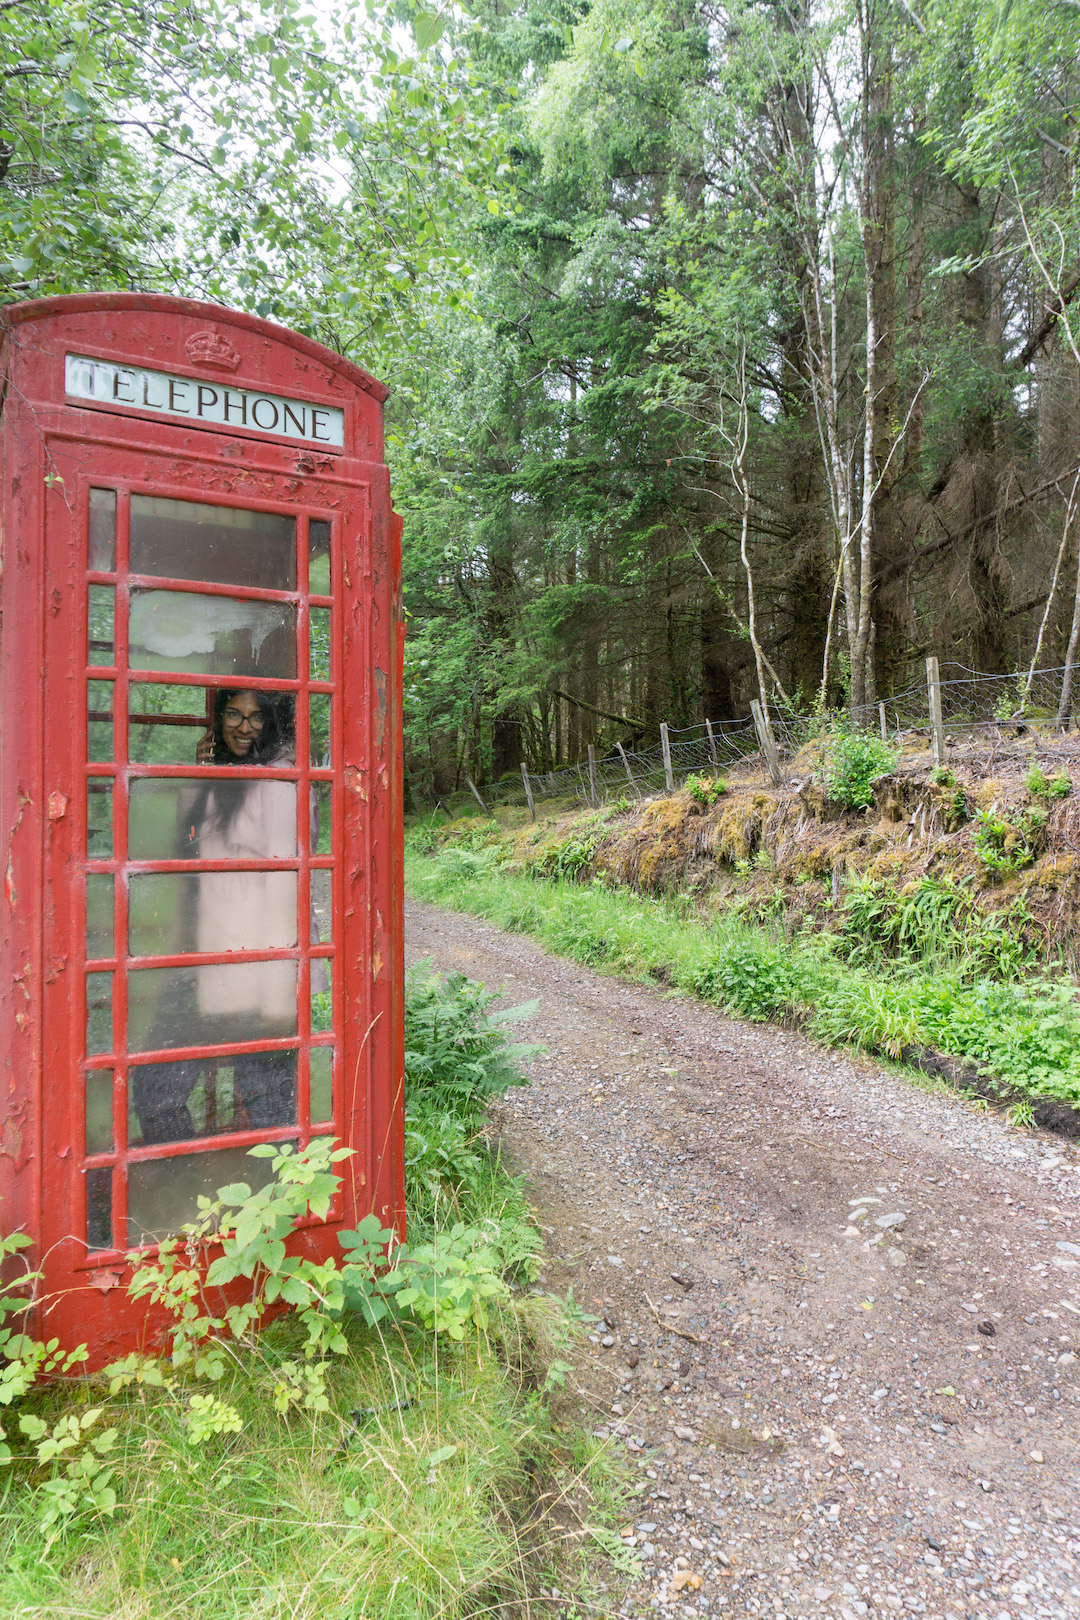 Red telephone booth in the Scottish countryside